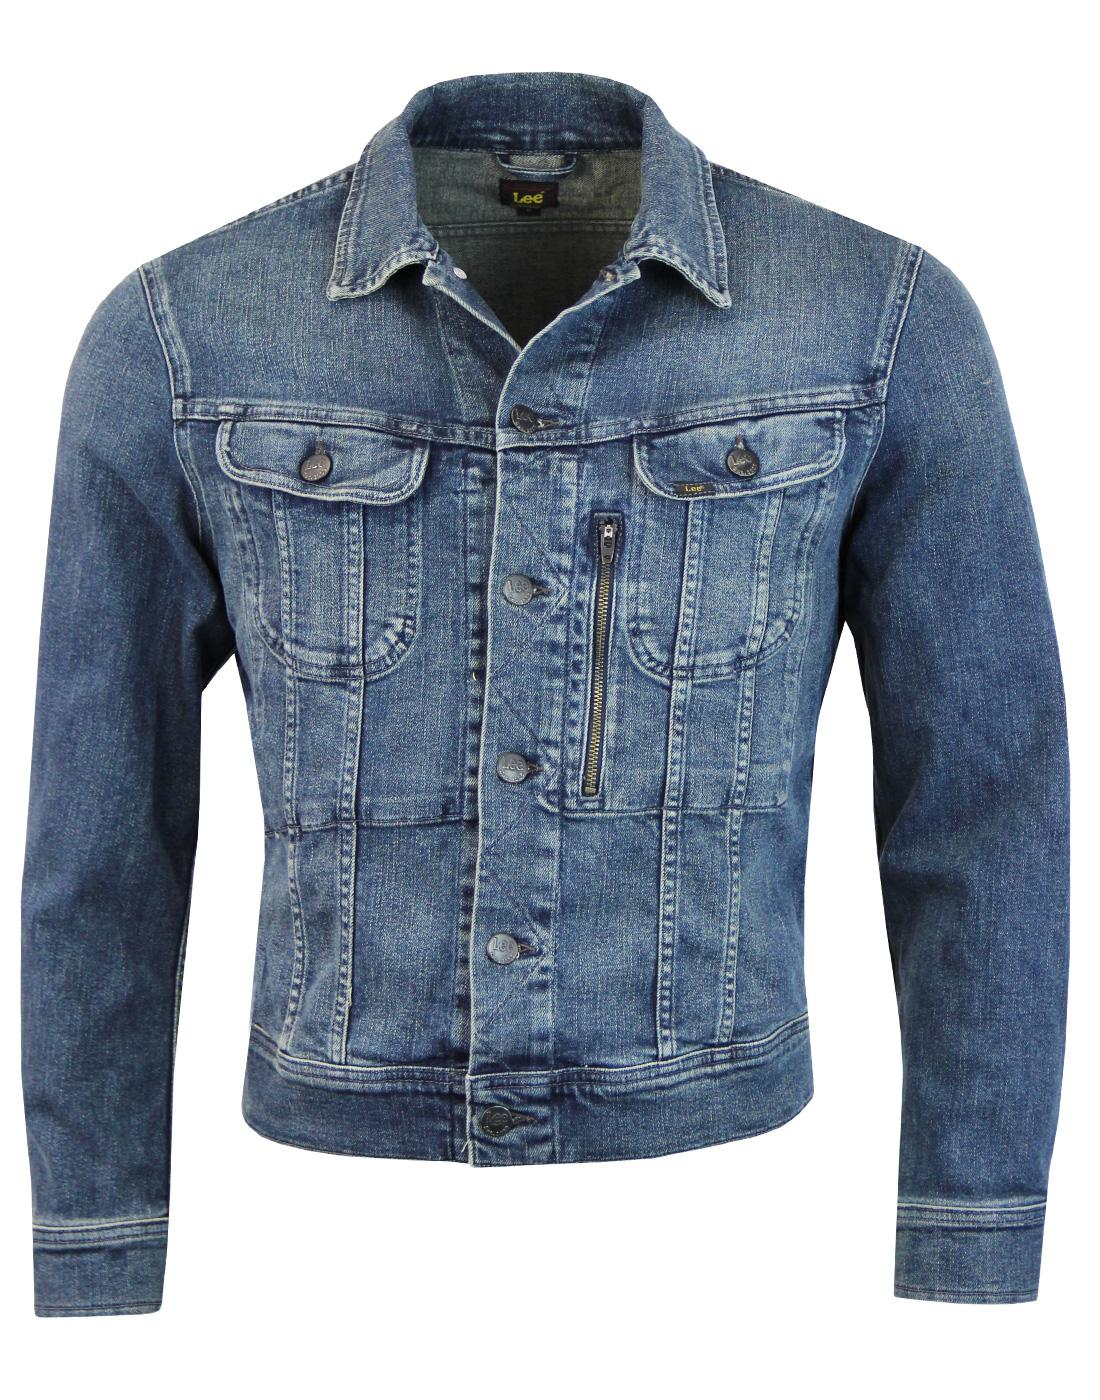 LEE Zip Rider Retro Mod Denim Jacket STRUMMER BLUE